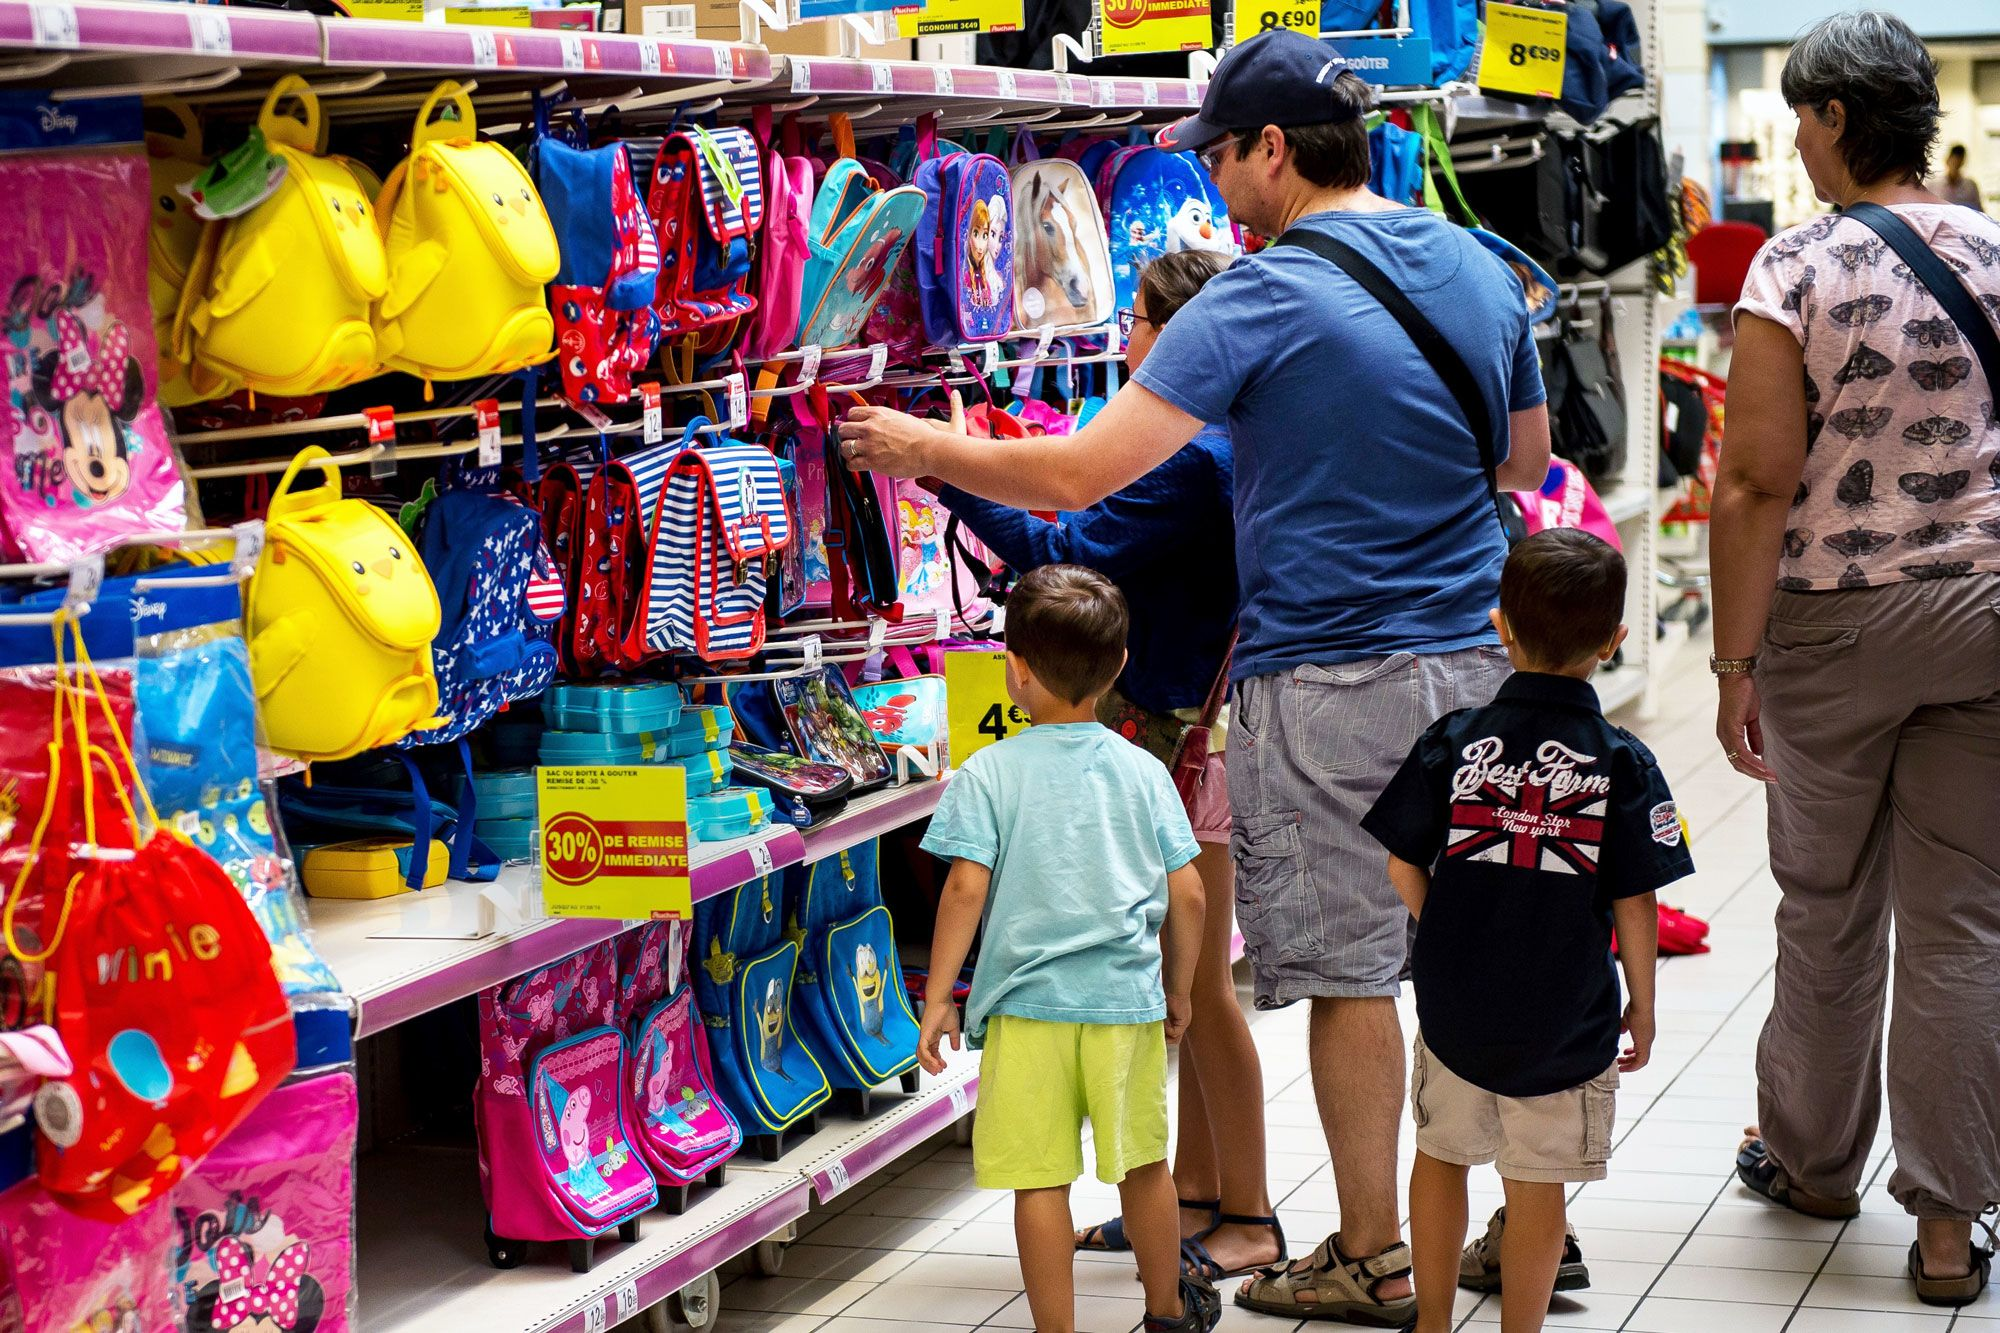 Don't expect back-to-school spending to give retailers a lift